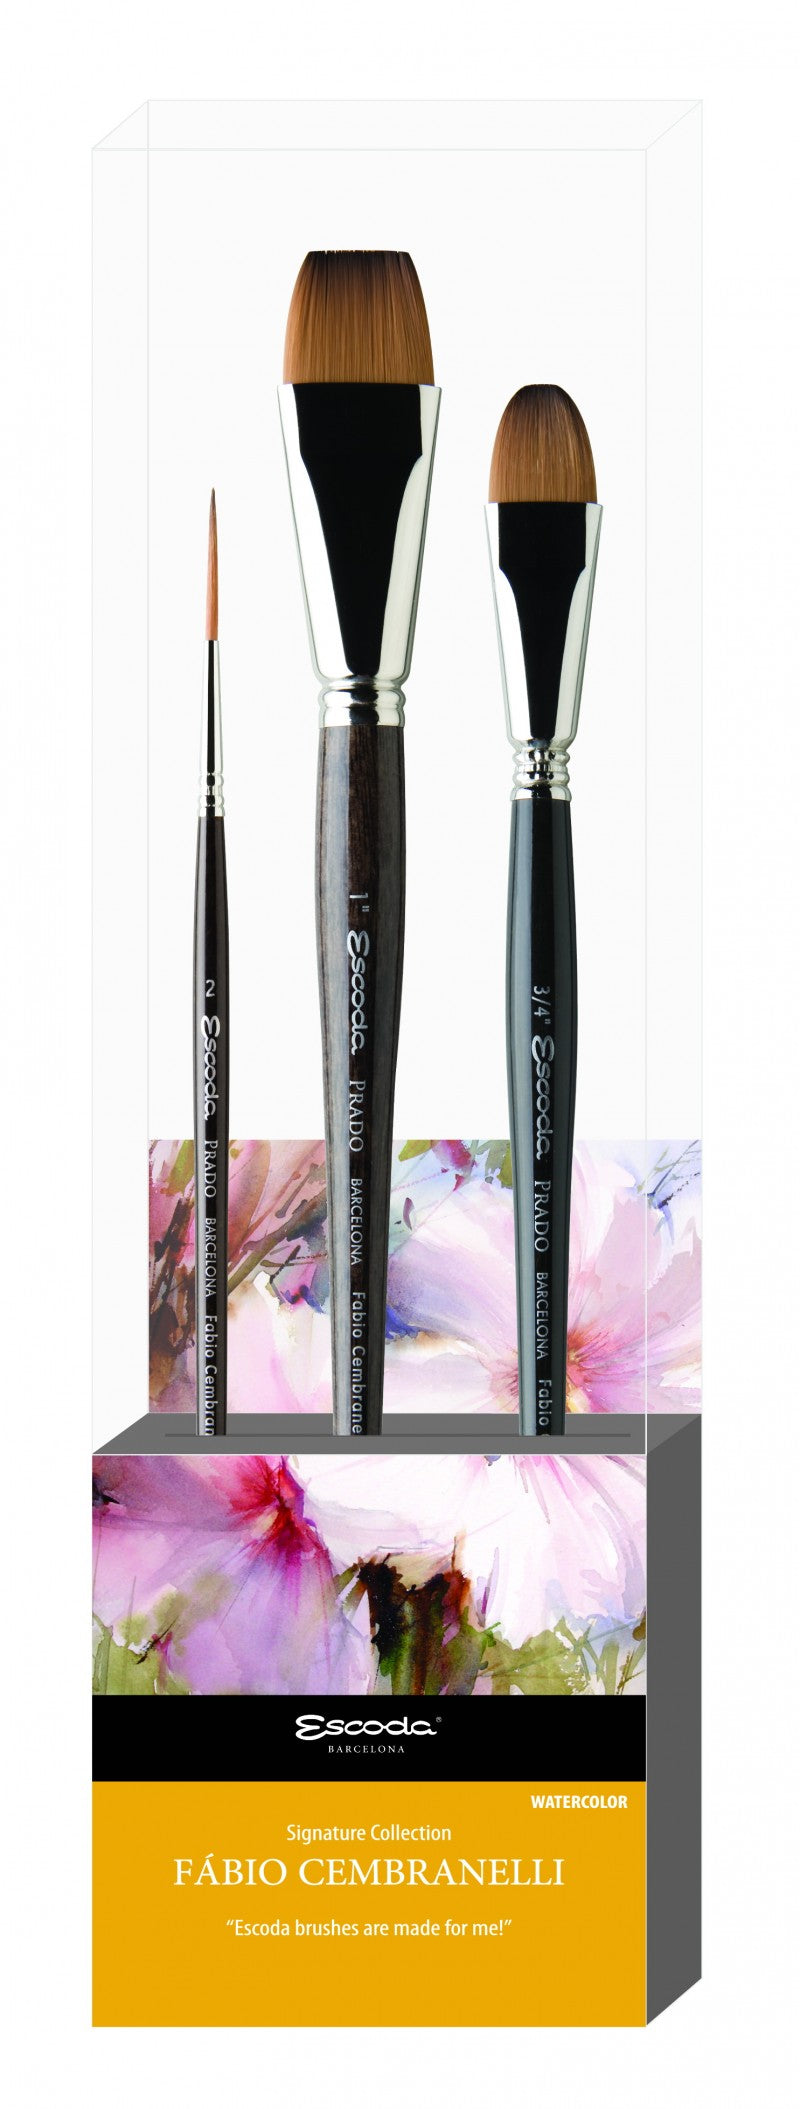 Fabio Cembranelli Signature collection Set No. 2 - Escoda Synthetic Watercolour Brushes